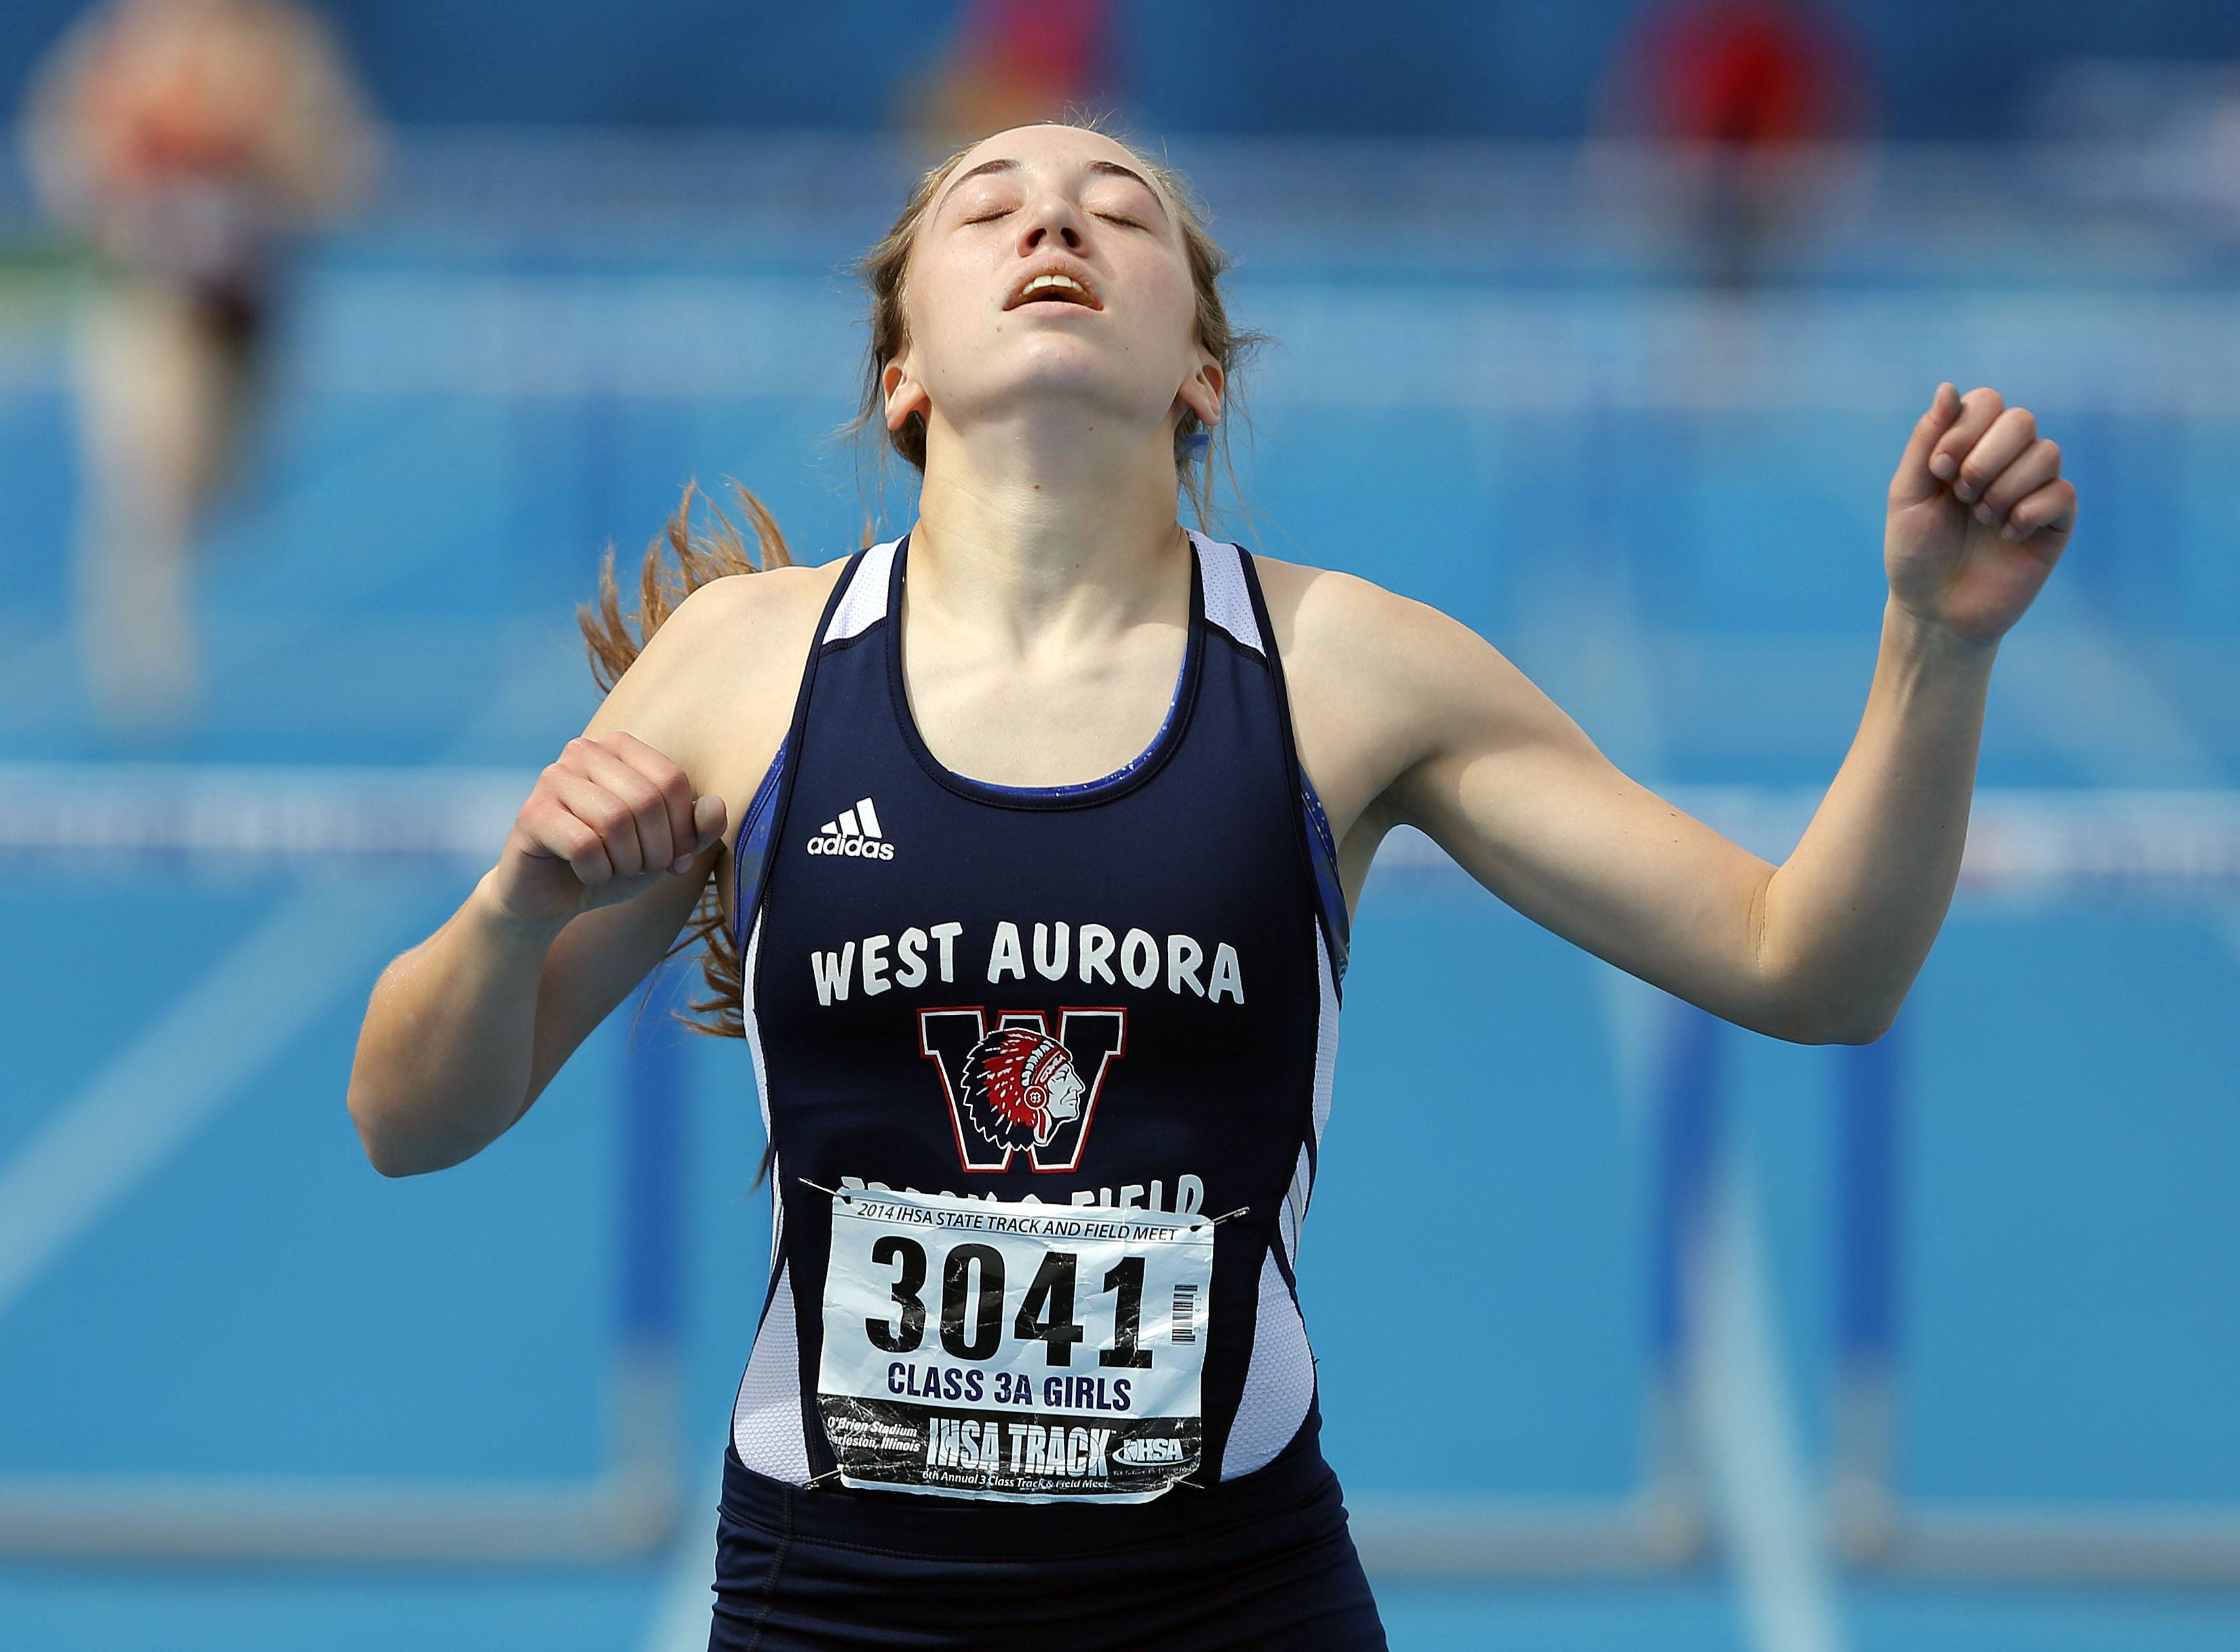 West Aurora's Emma Spagnola reacts after winning the class 3A 300-meter low hurdles during the girls track and field state finals at Eastern Illinois University in Charleston Friday.